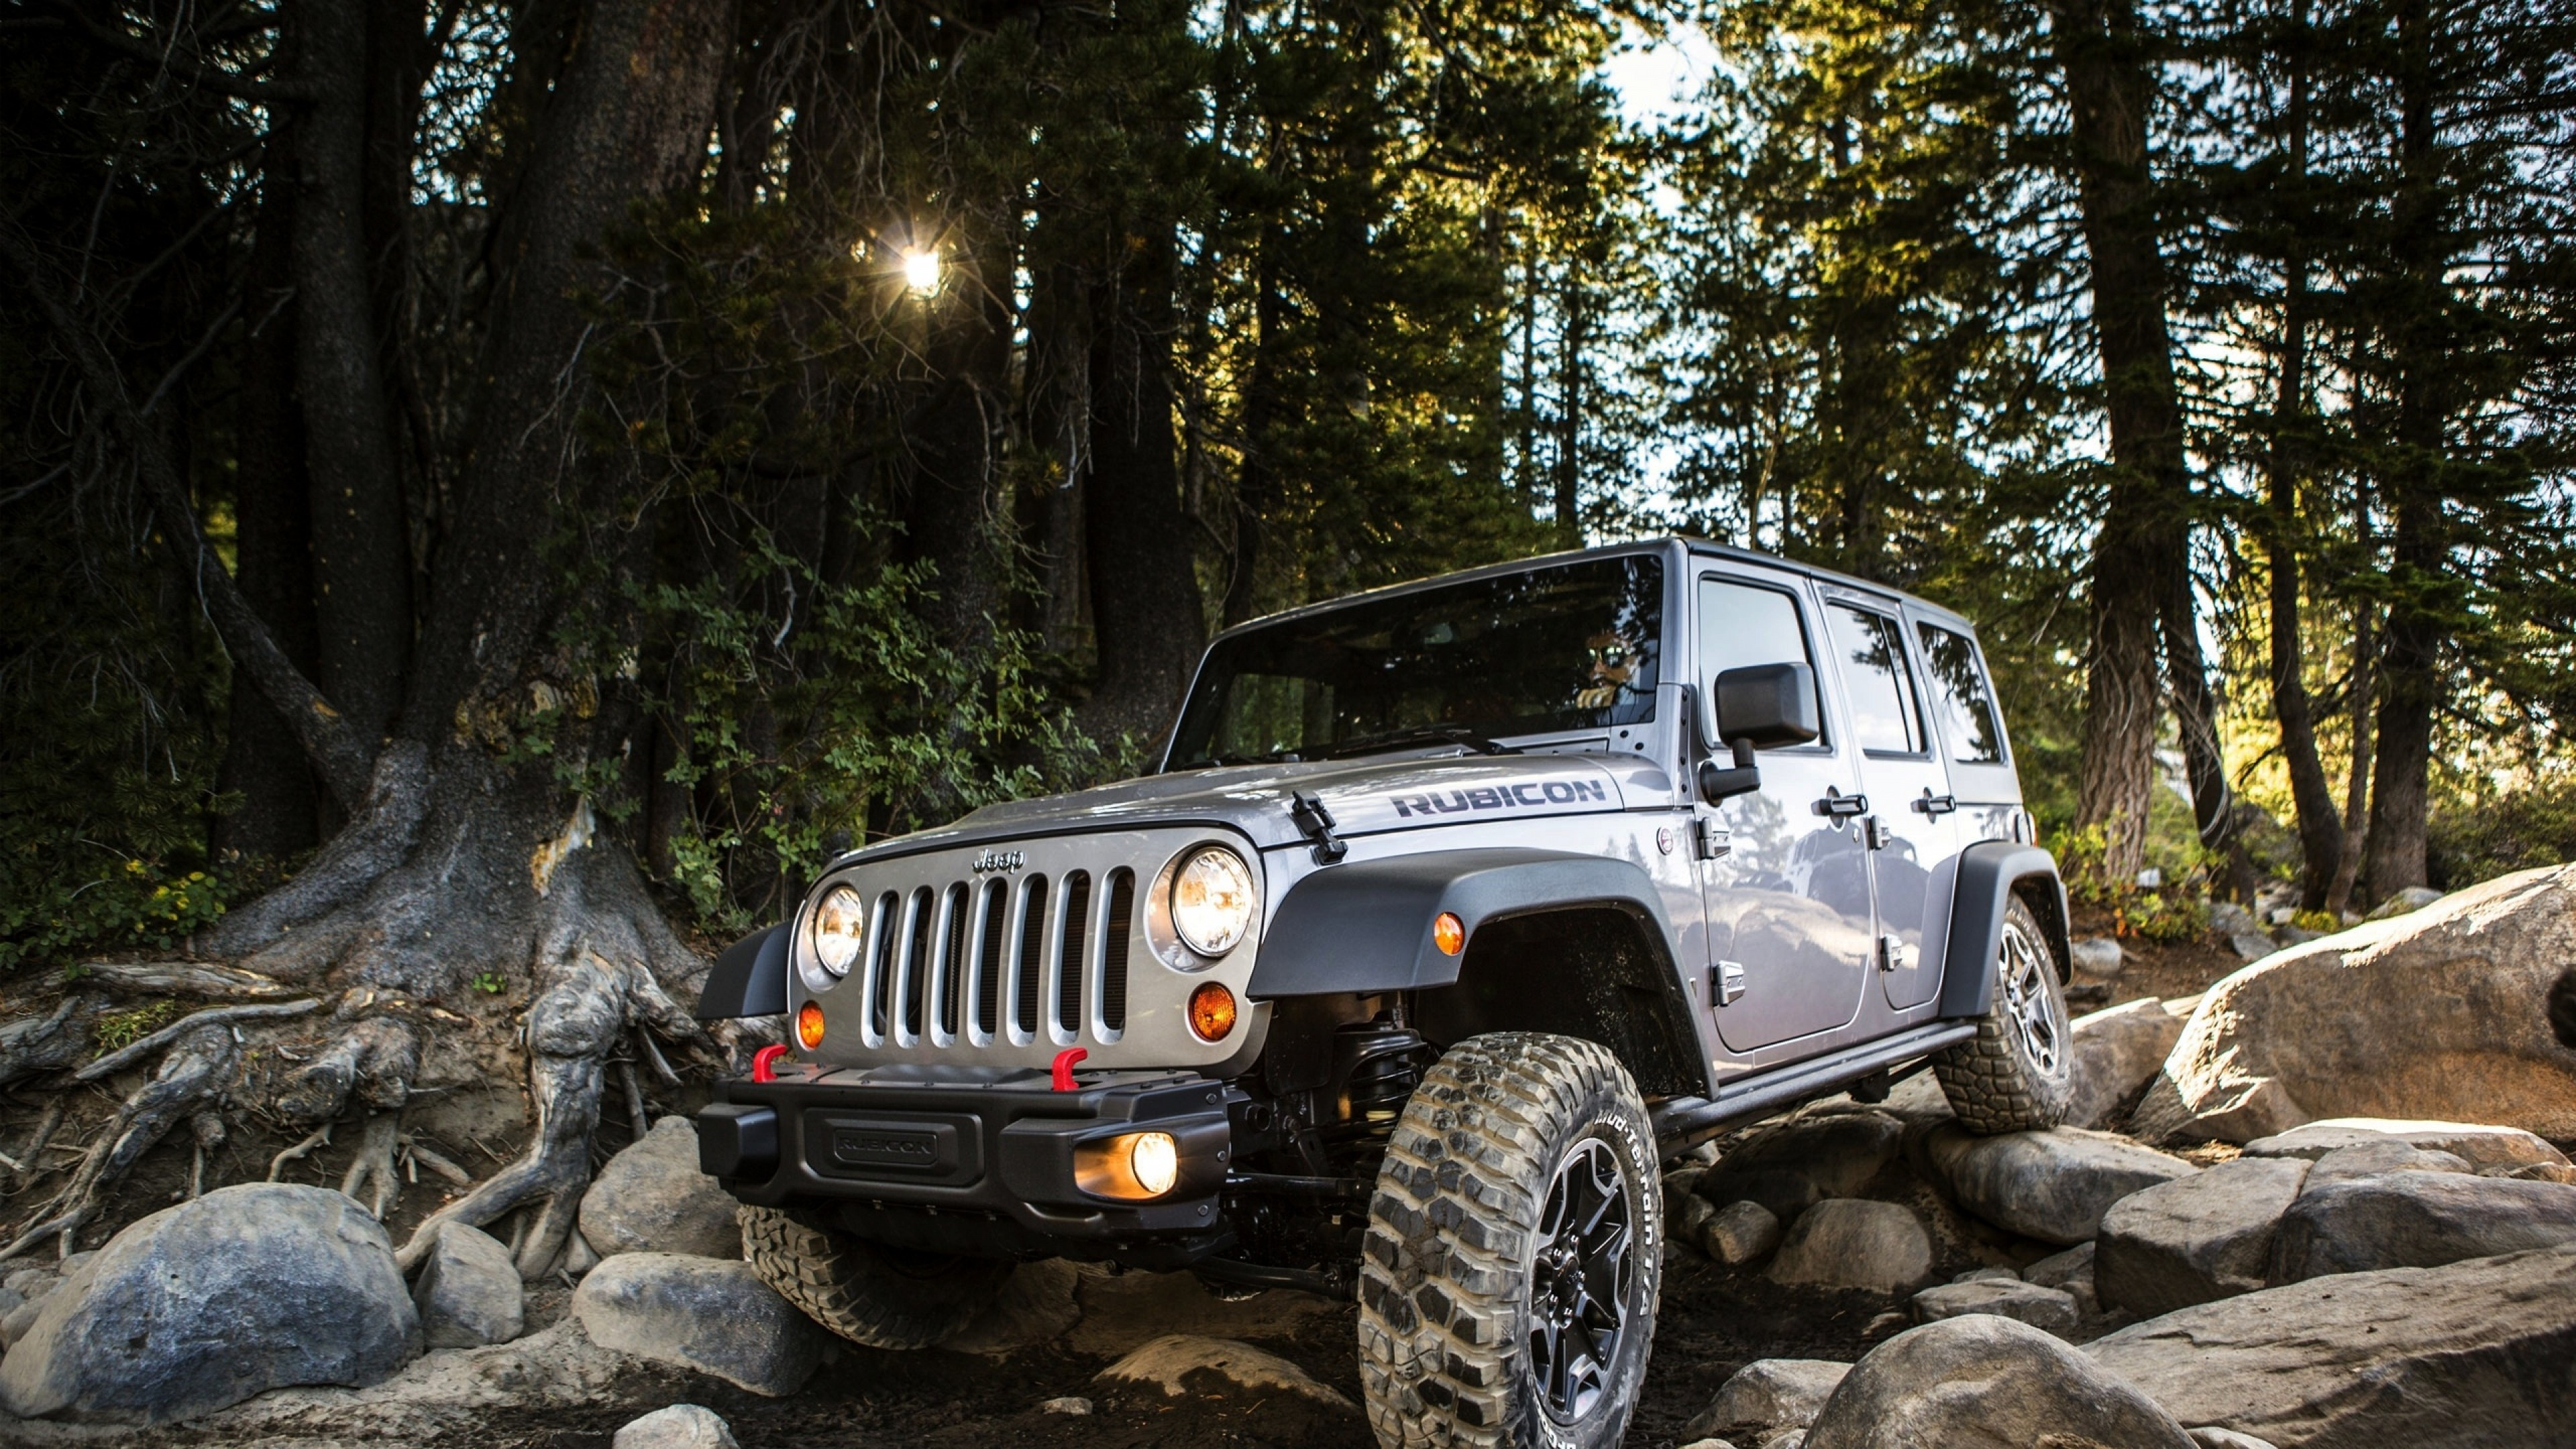 117 1175804 jeep hd images jeep wallpaper 4k